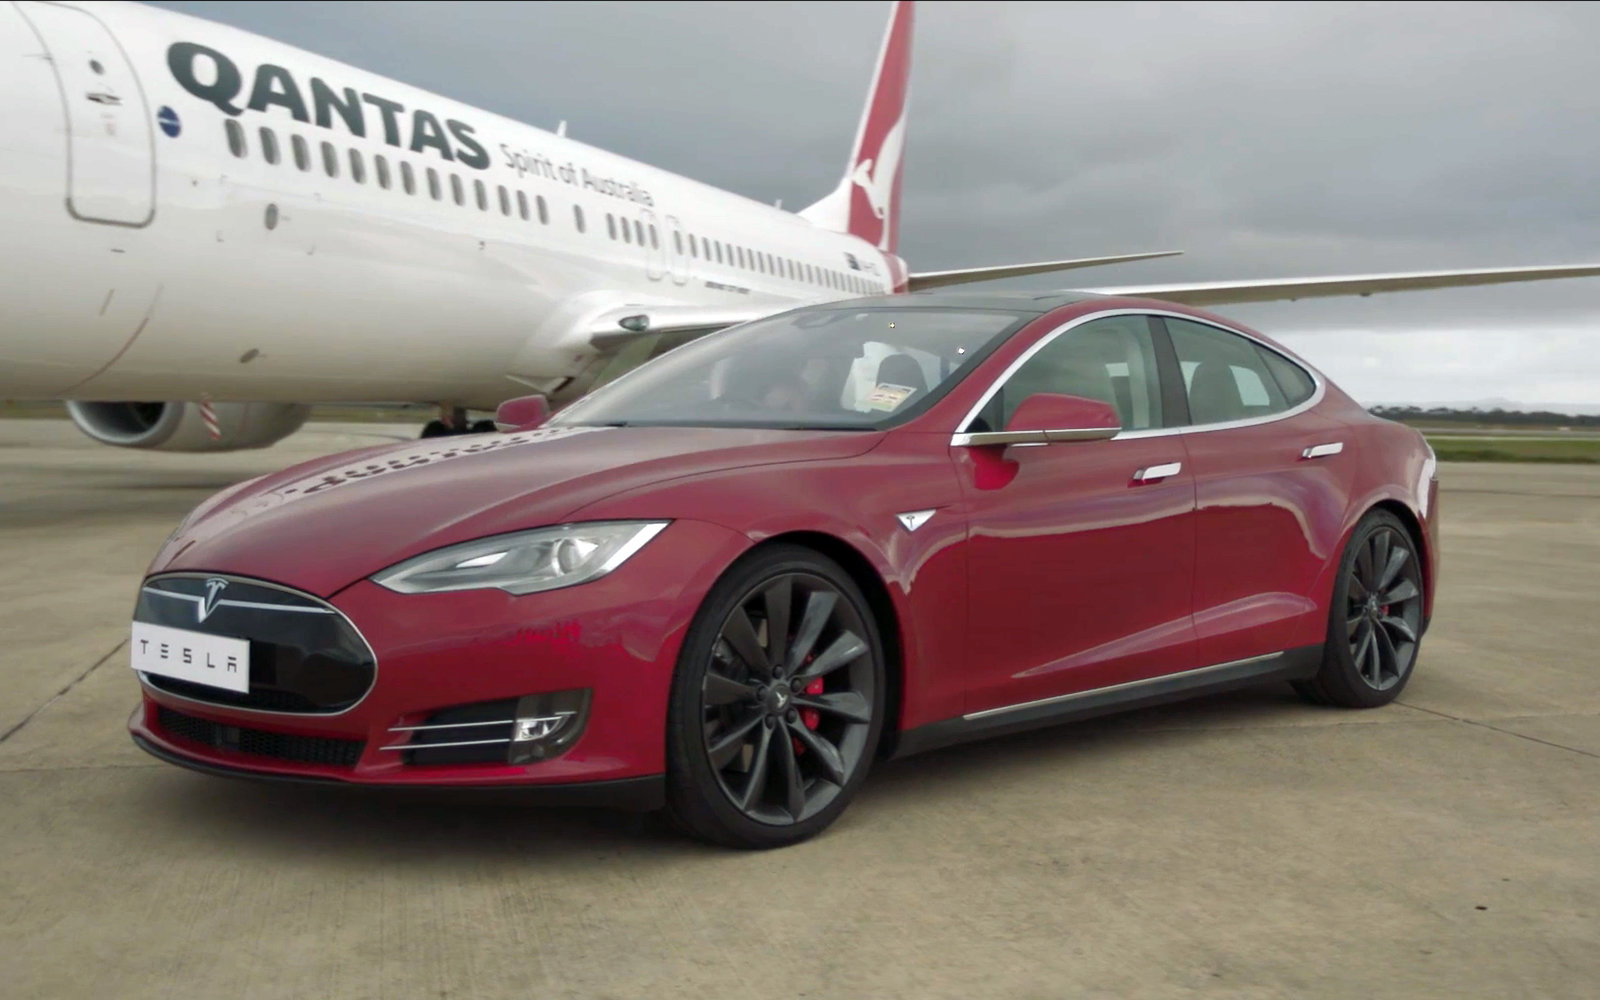 Qantas and Tesla